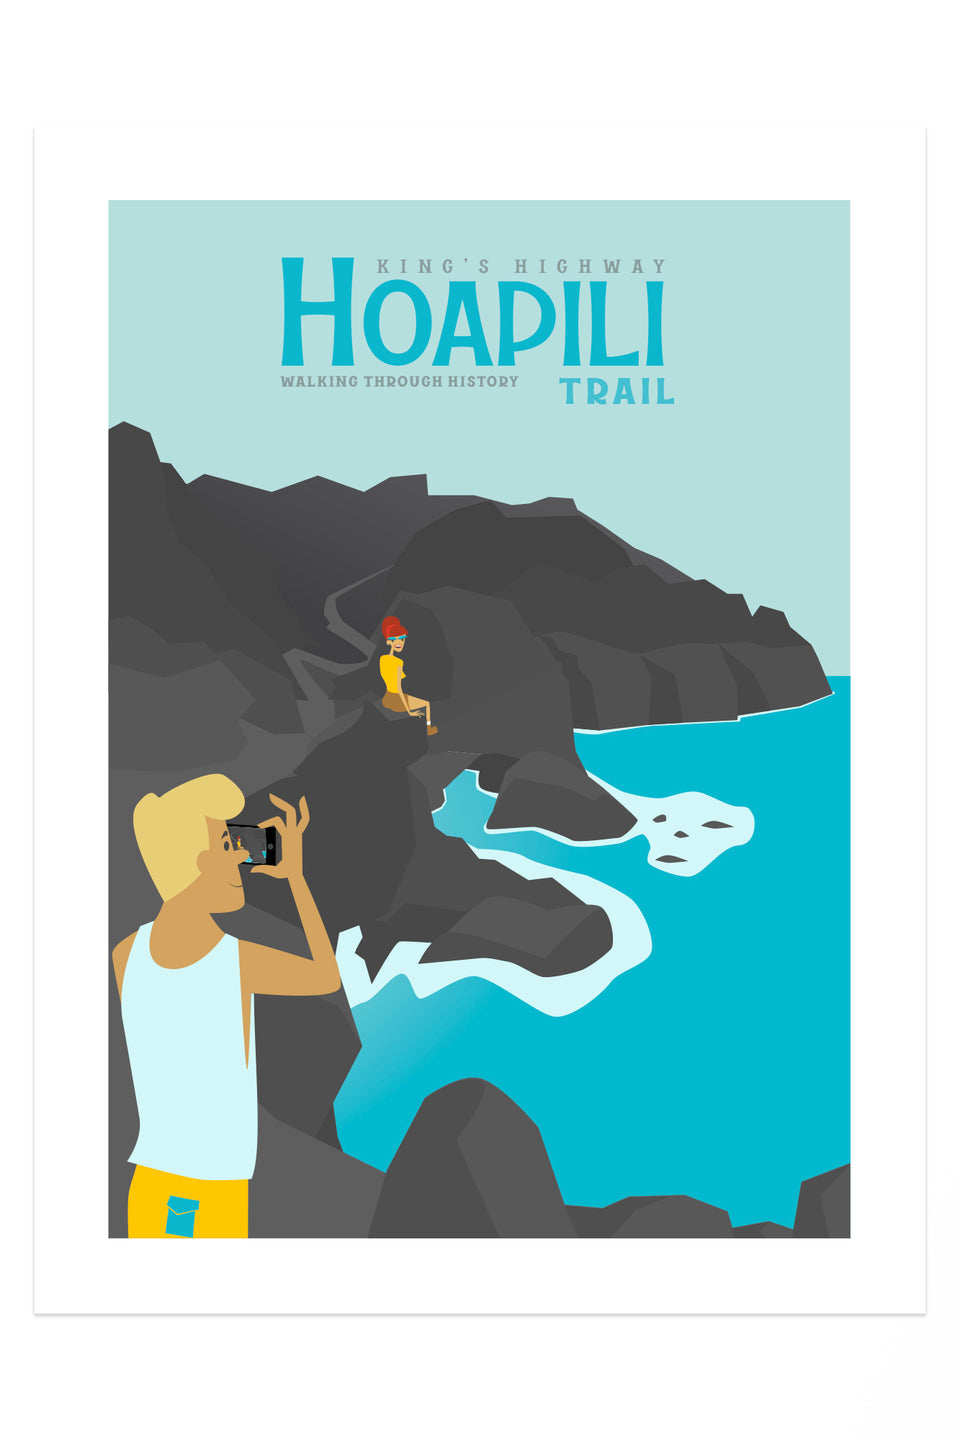 HOAPILI TRAIL (Retro Hawai'i Travel Poster)